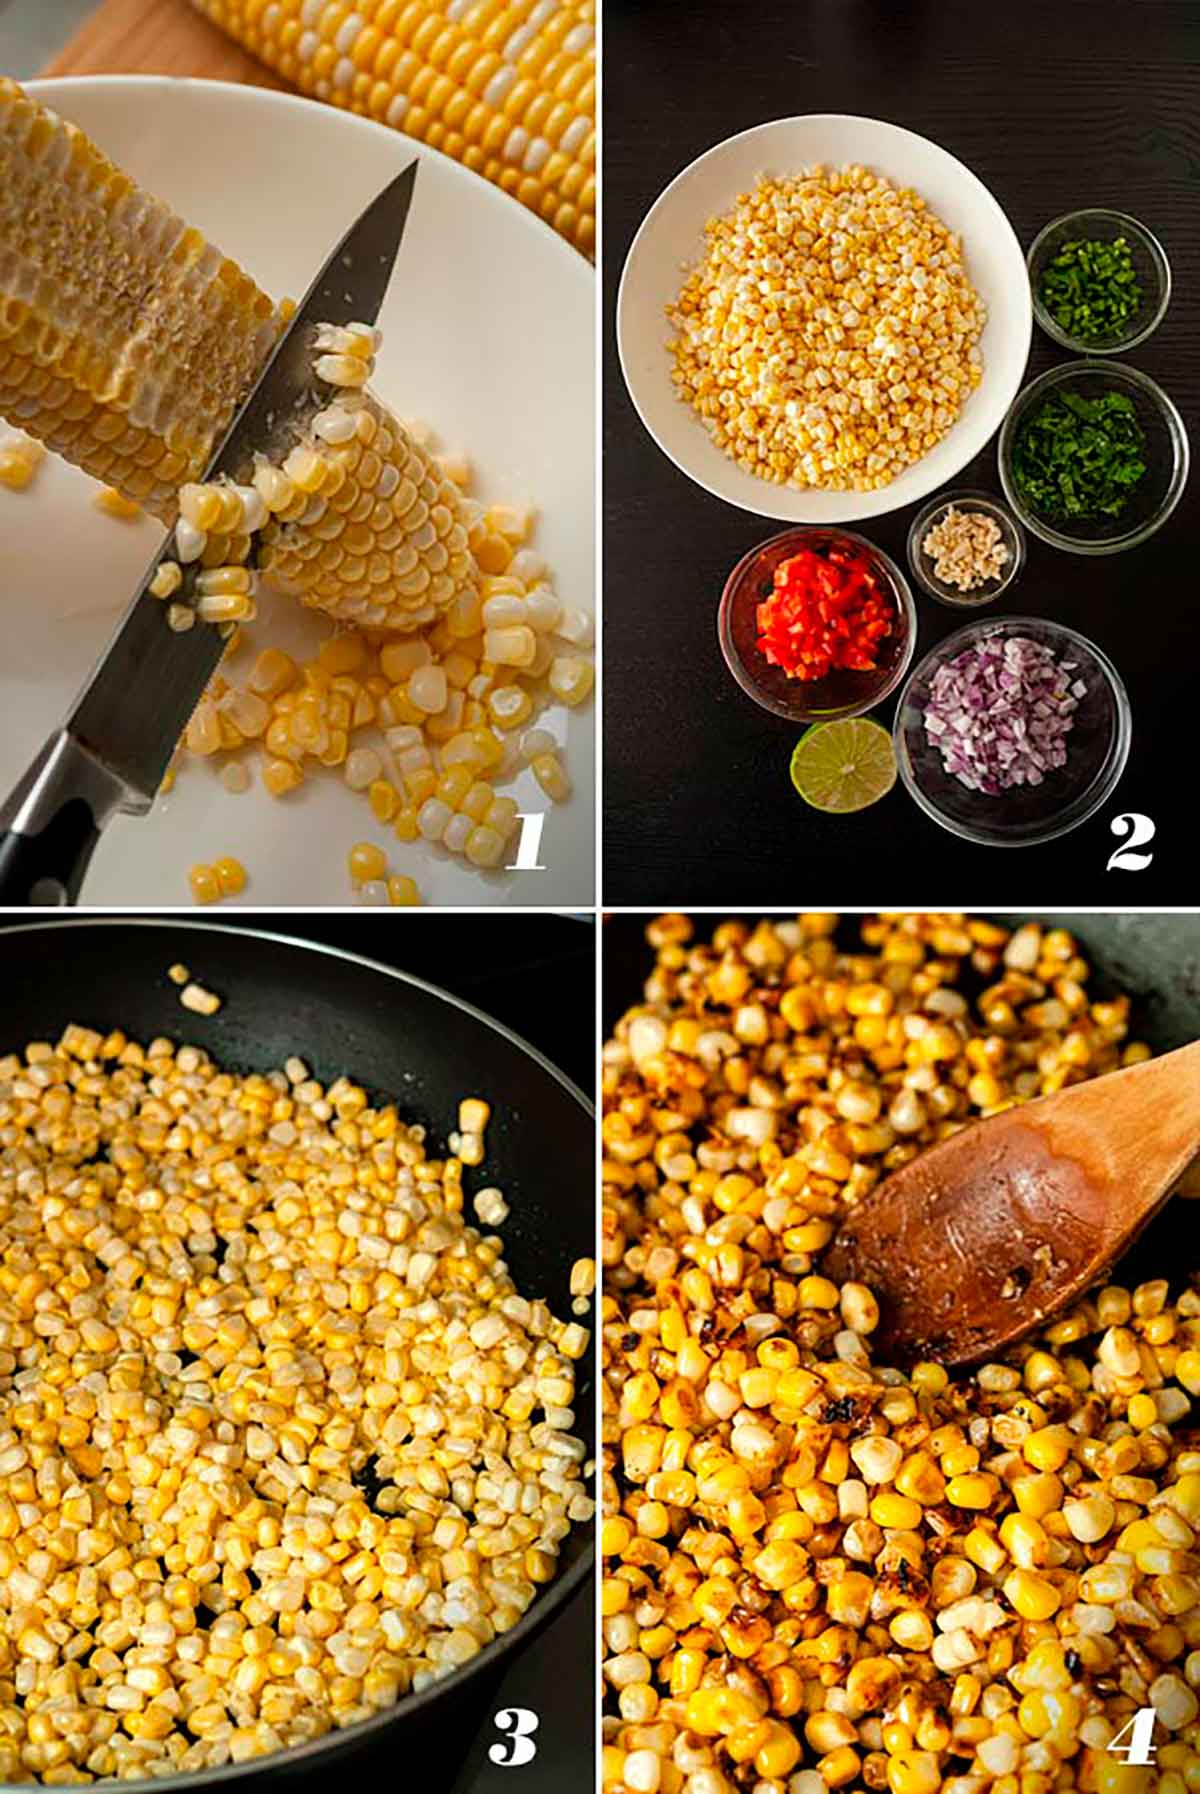 A collage of 4 numbered images showing how to make Mexican street corn salad.